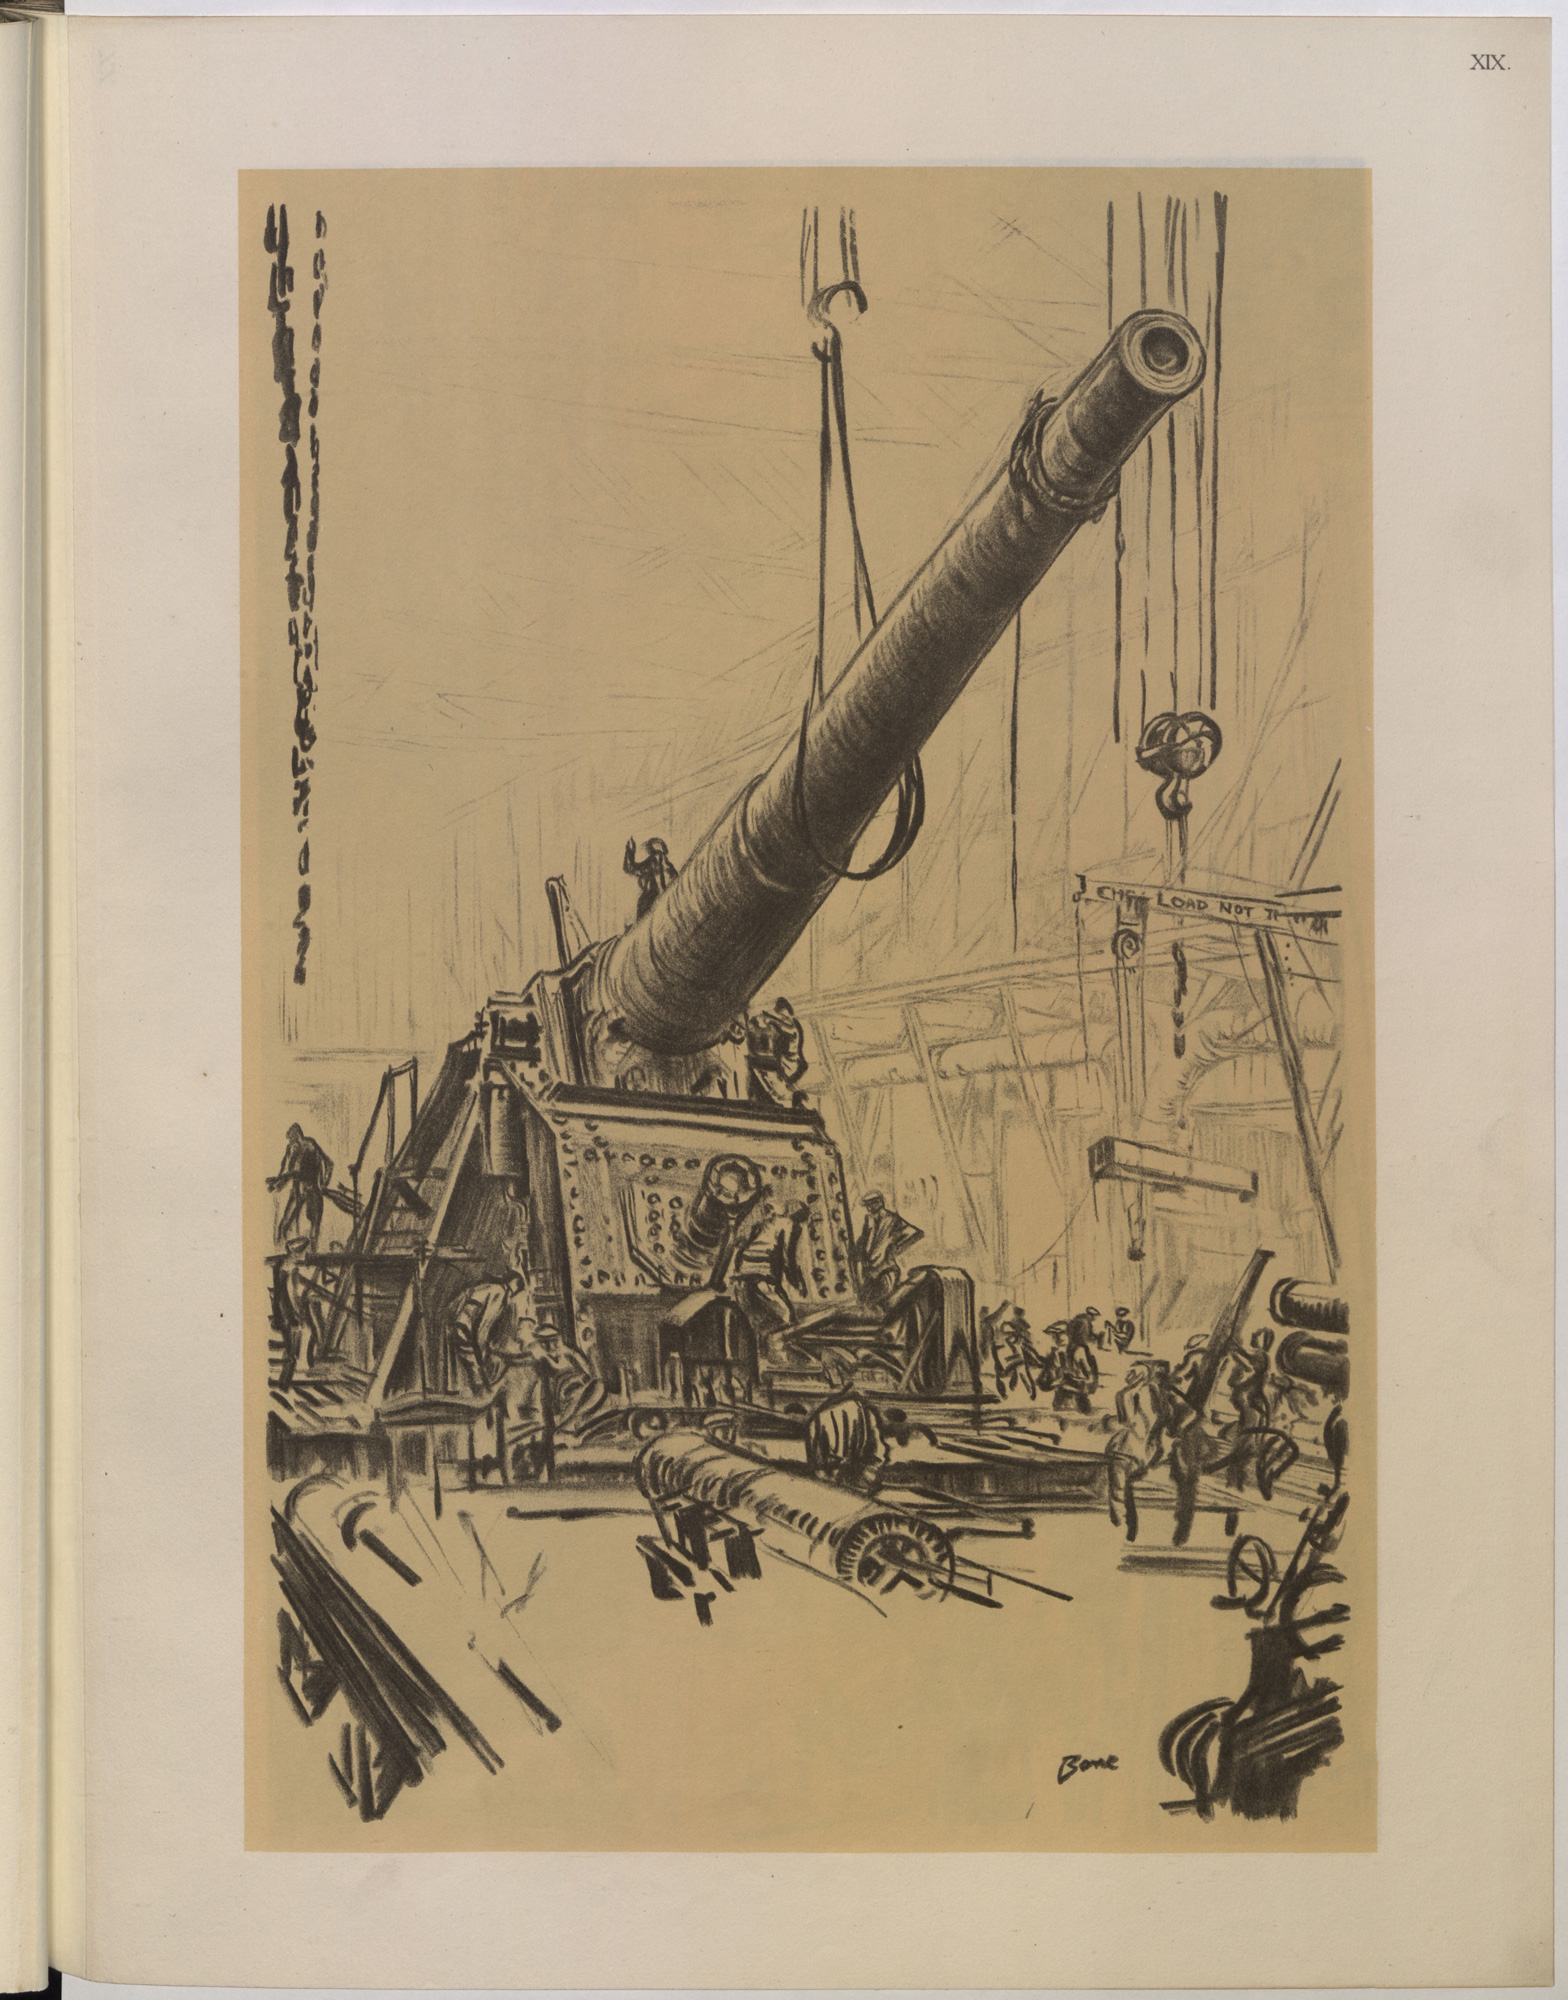 'Mounting a great gun' by Muirhead Bone, official British War Artist, which emphasises the scale and complexity of modern warfare.